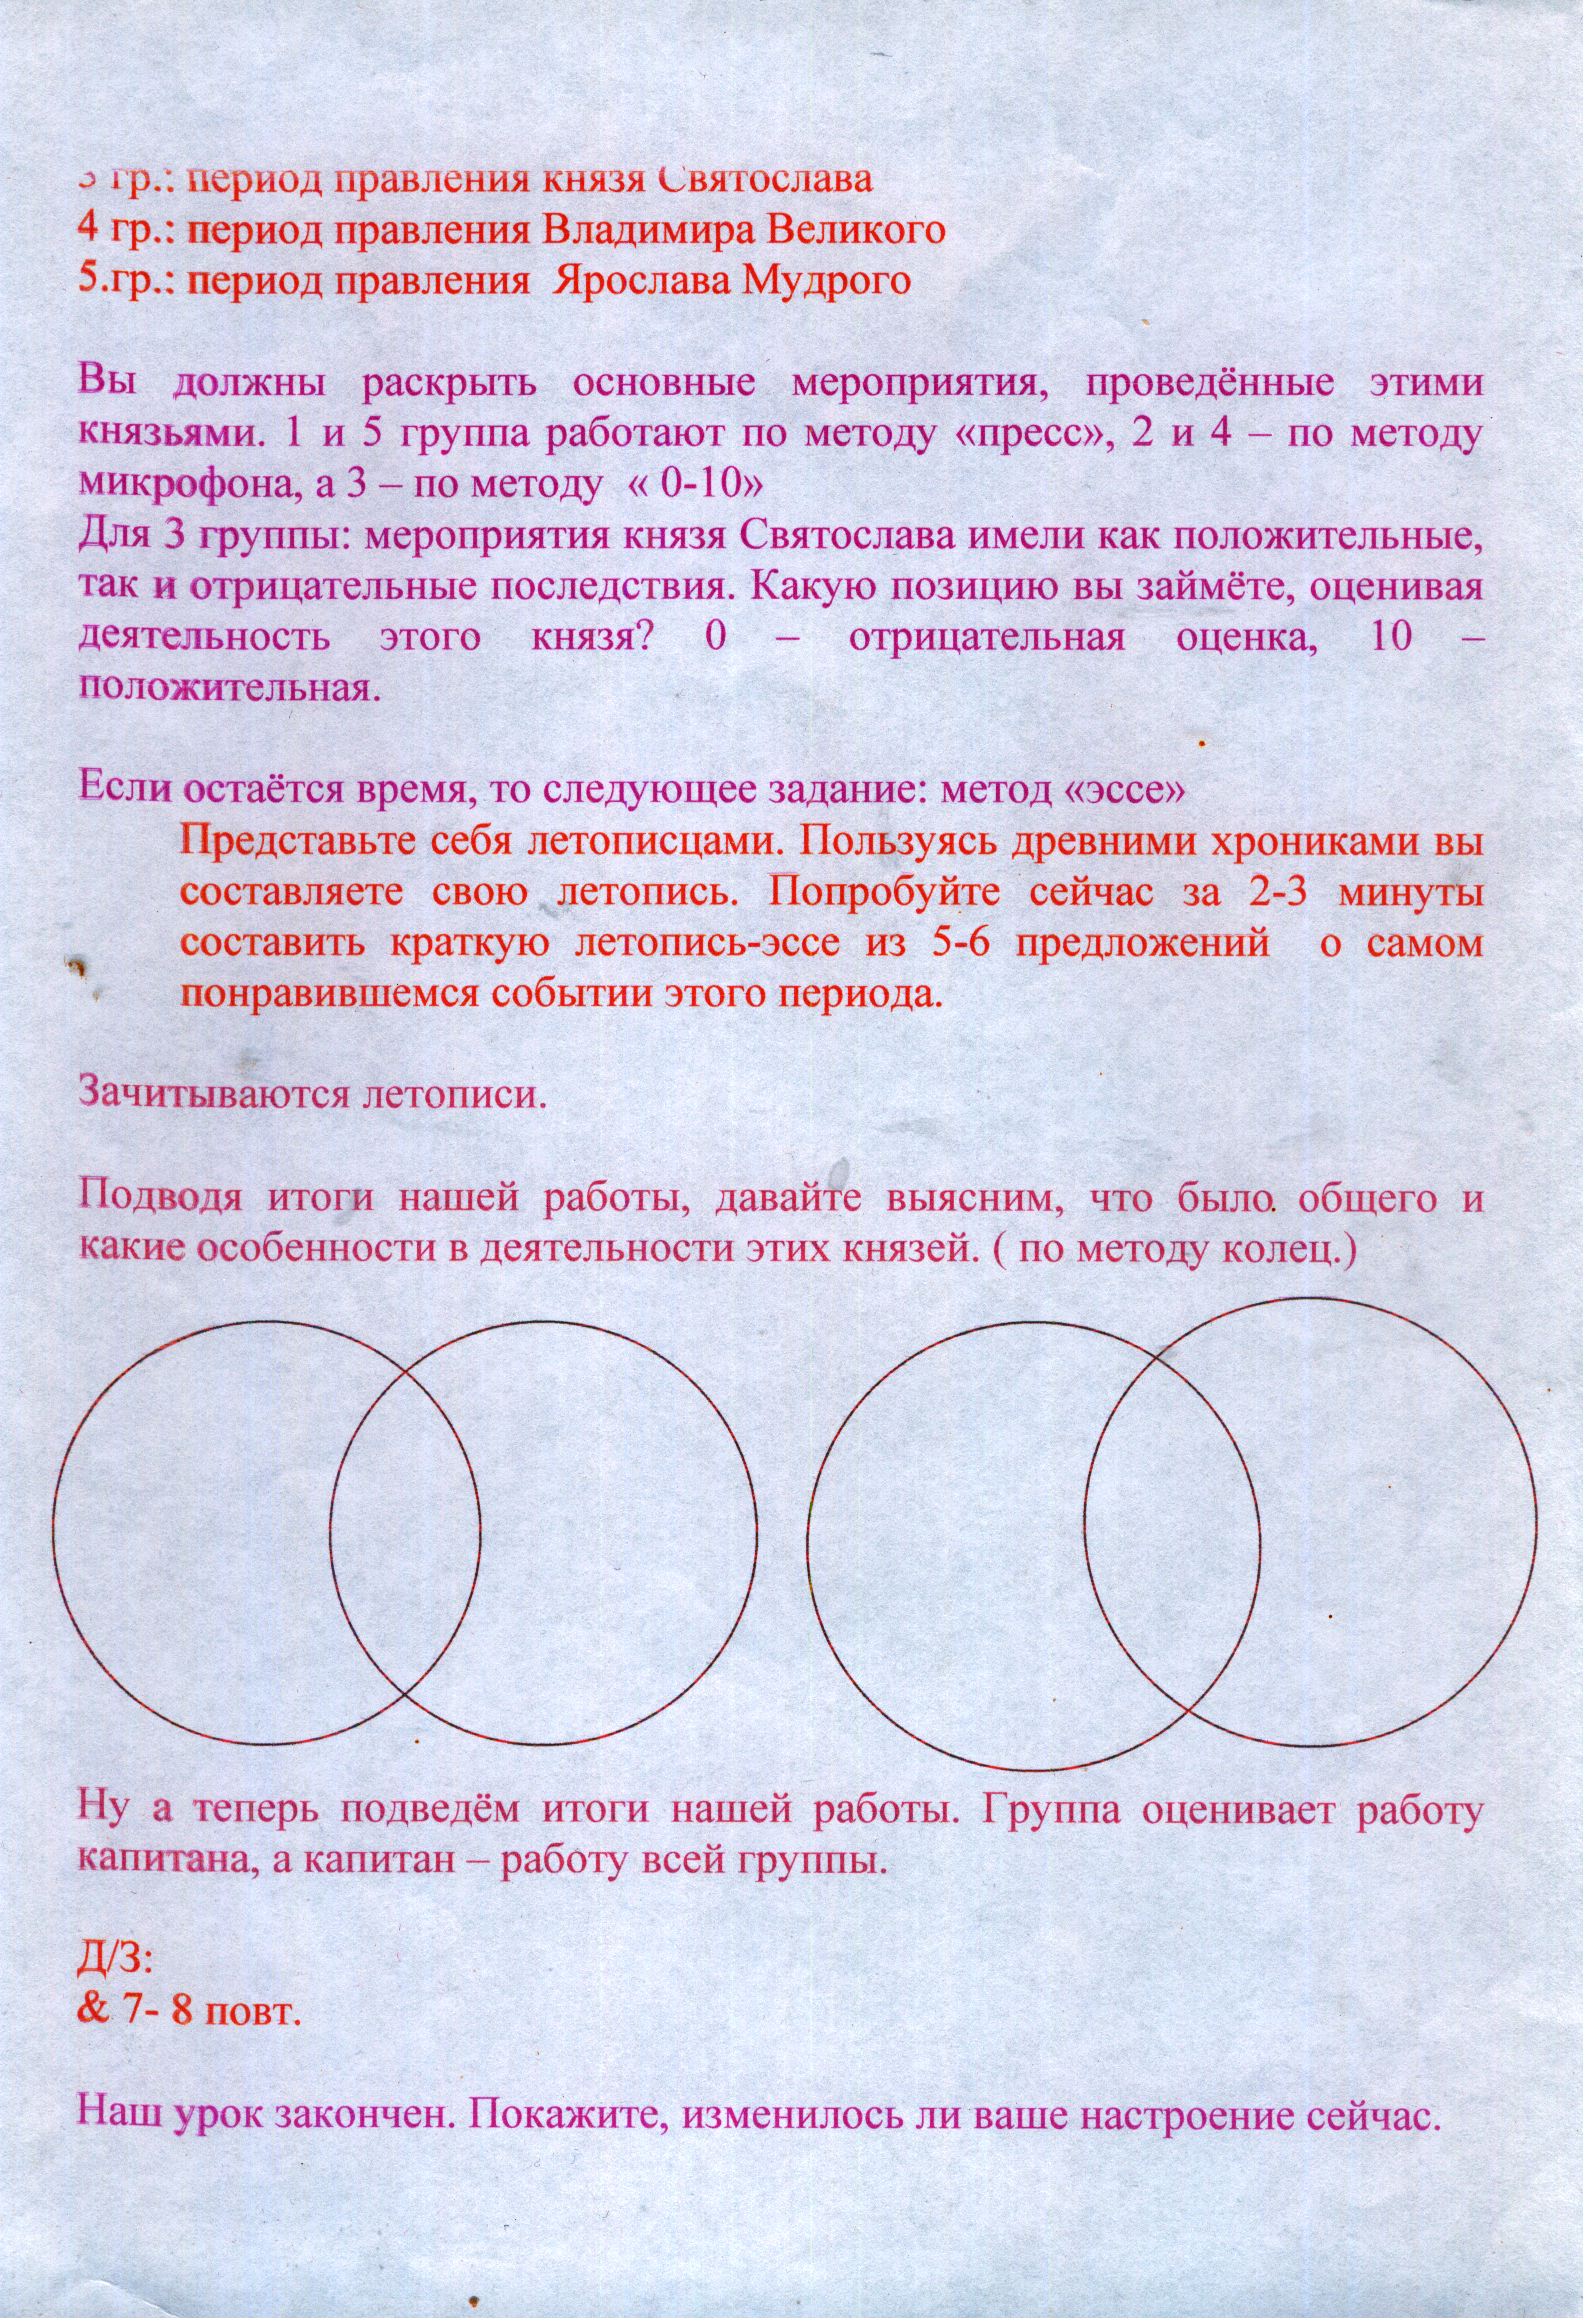 C:\Users\Санта\Documents\Scaning00018.bmp